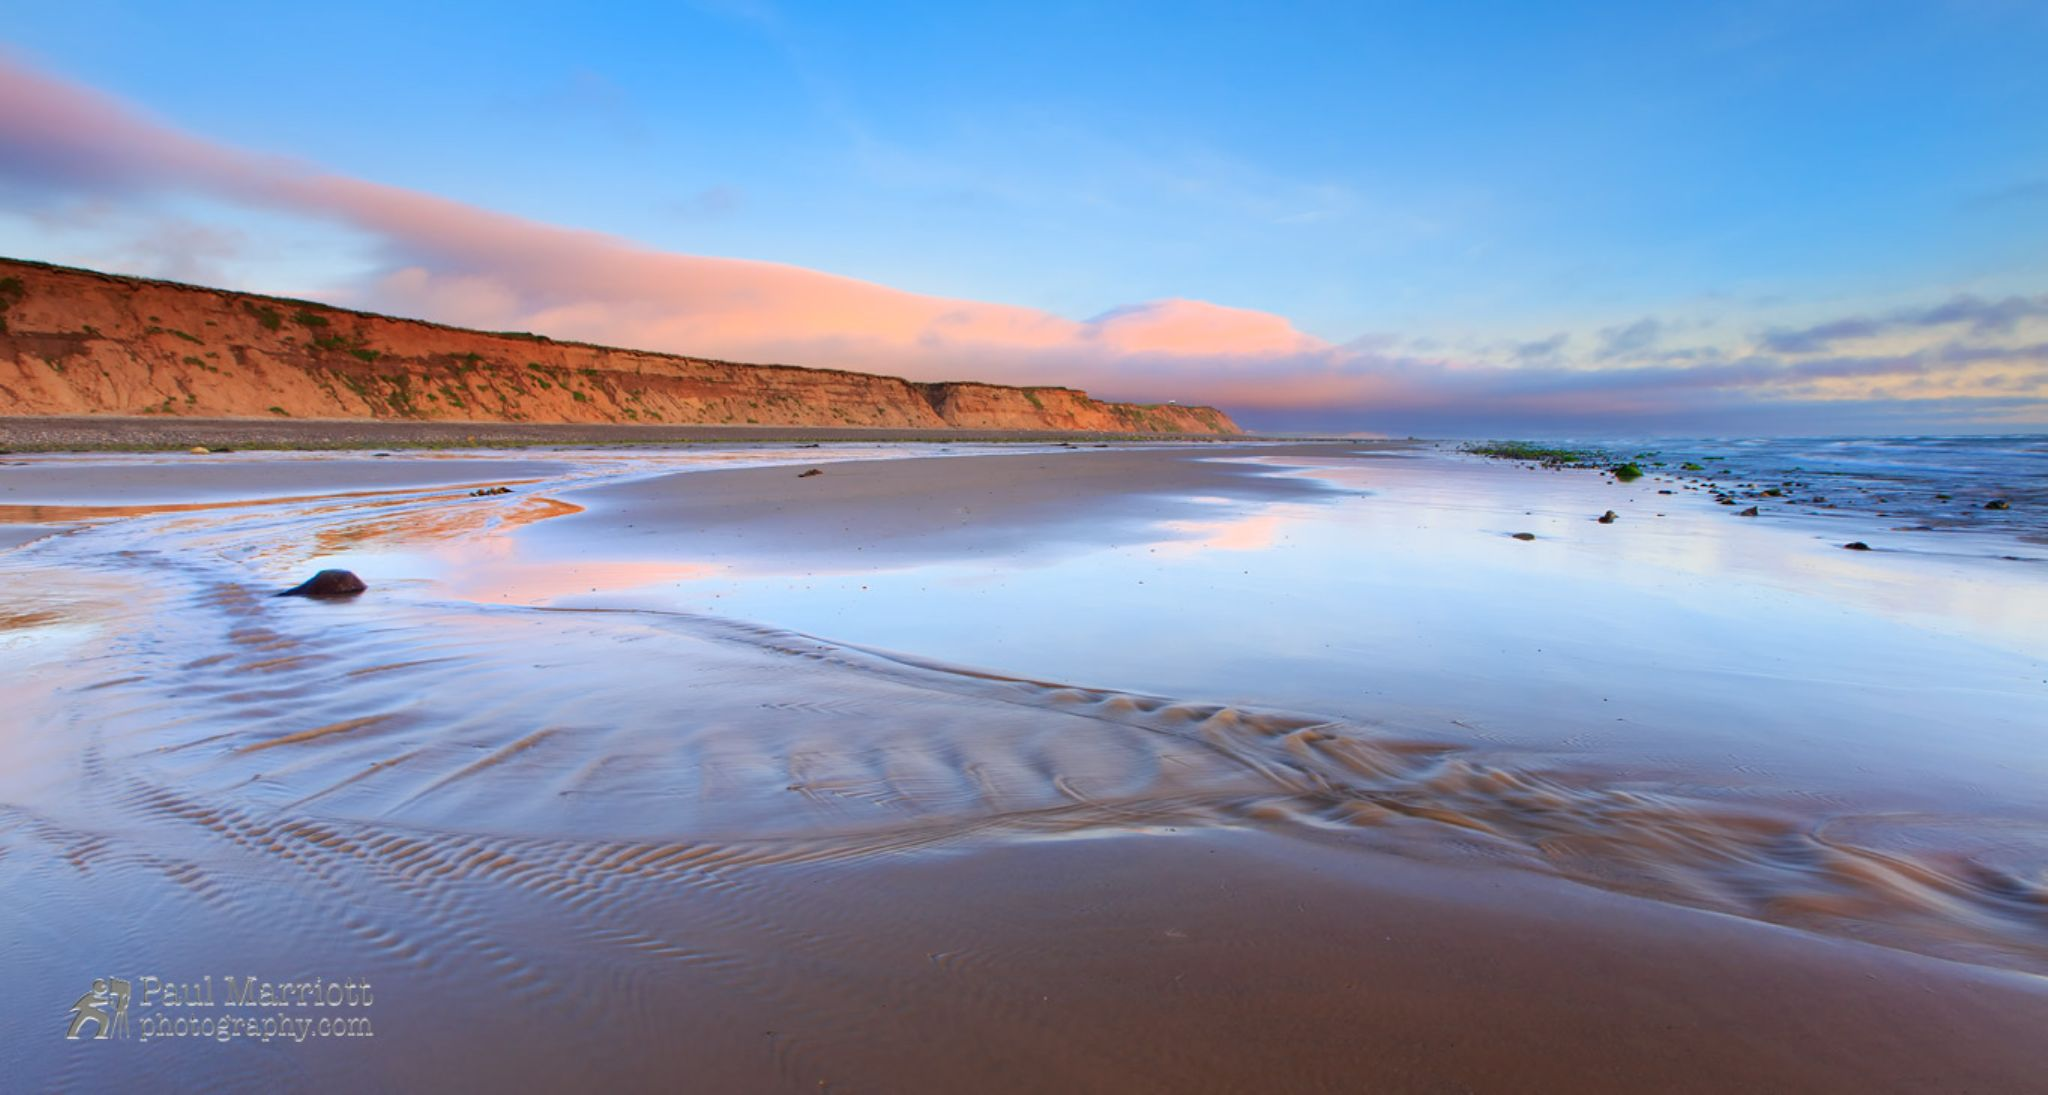 Tranquility by PaulMarriott